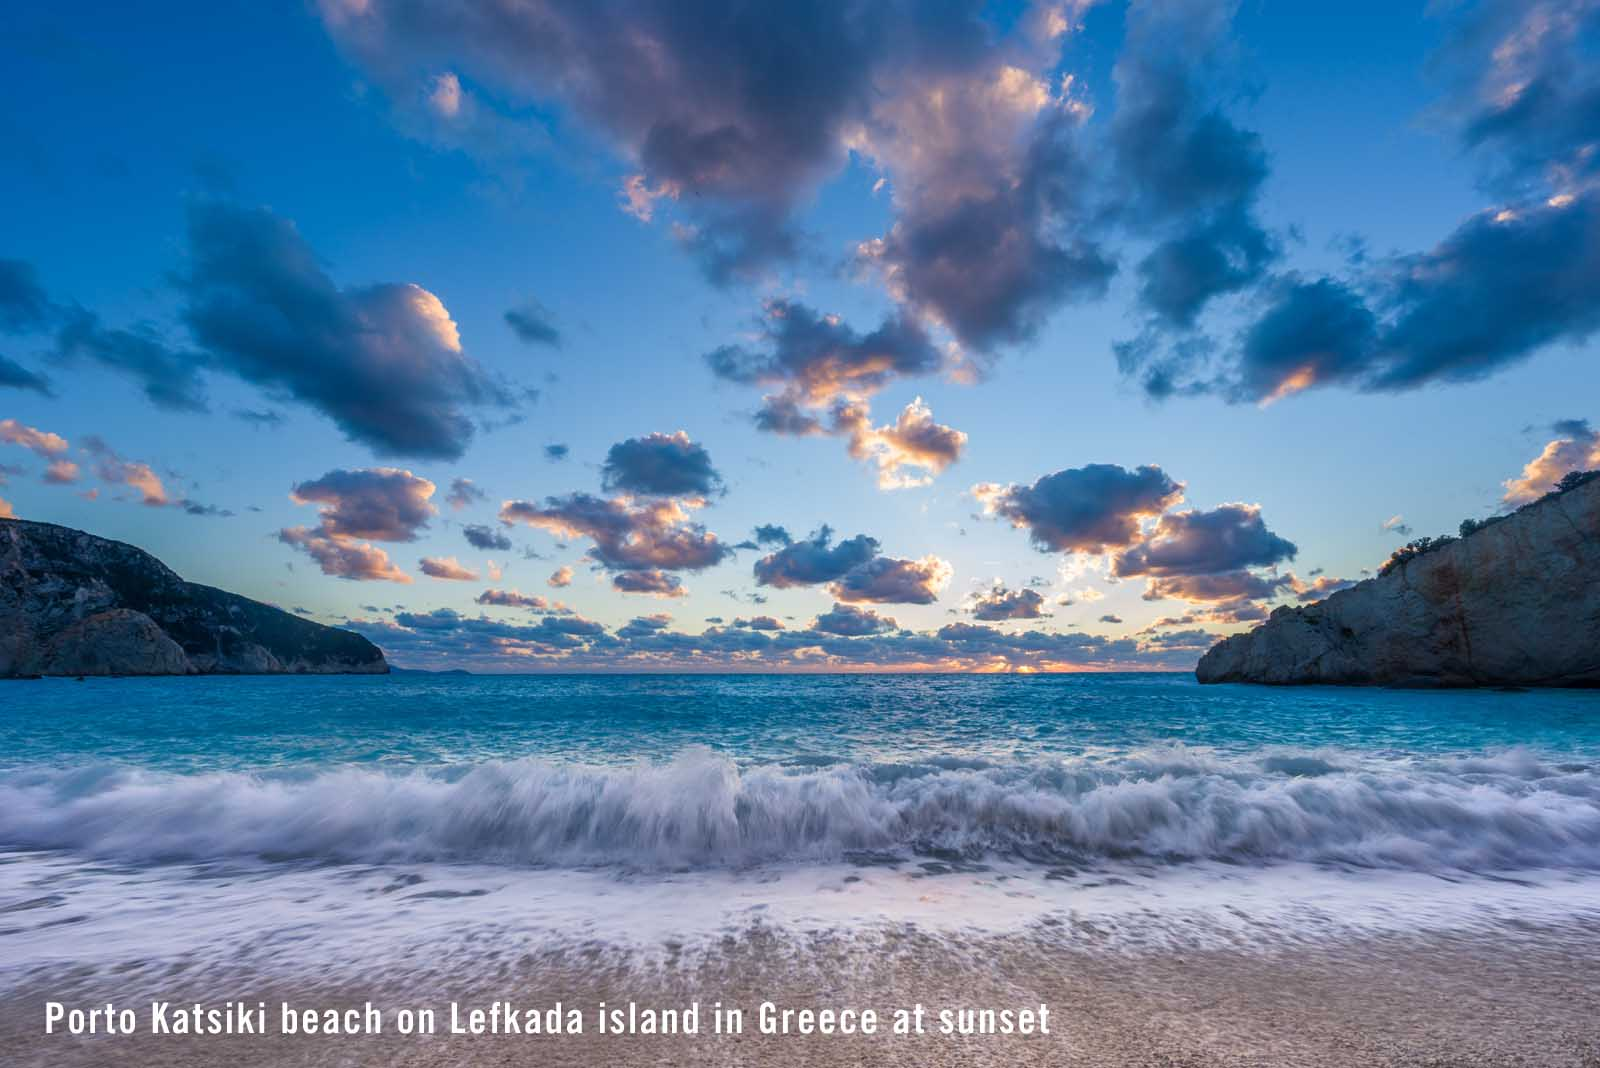 Enlarged image - Porto Katsiki beach on Lefkada island in Greece at sunset